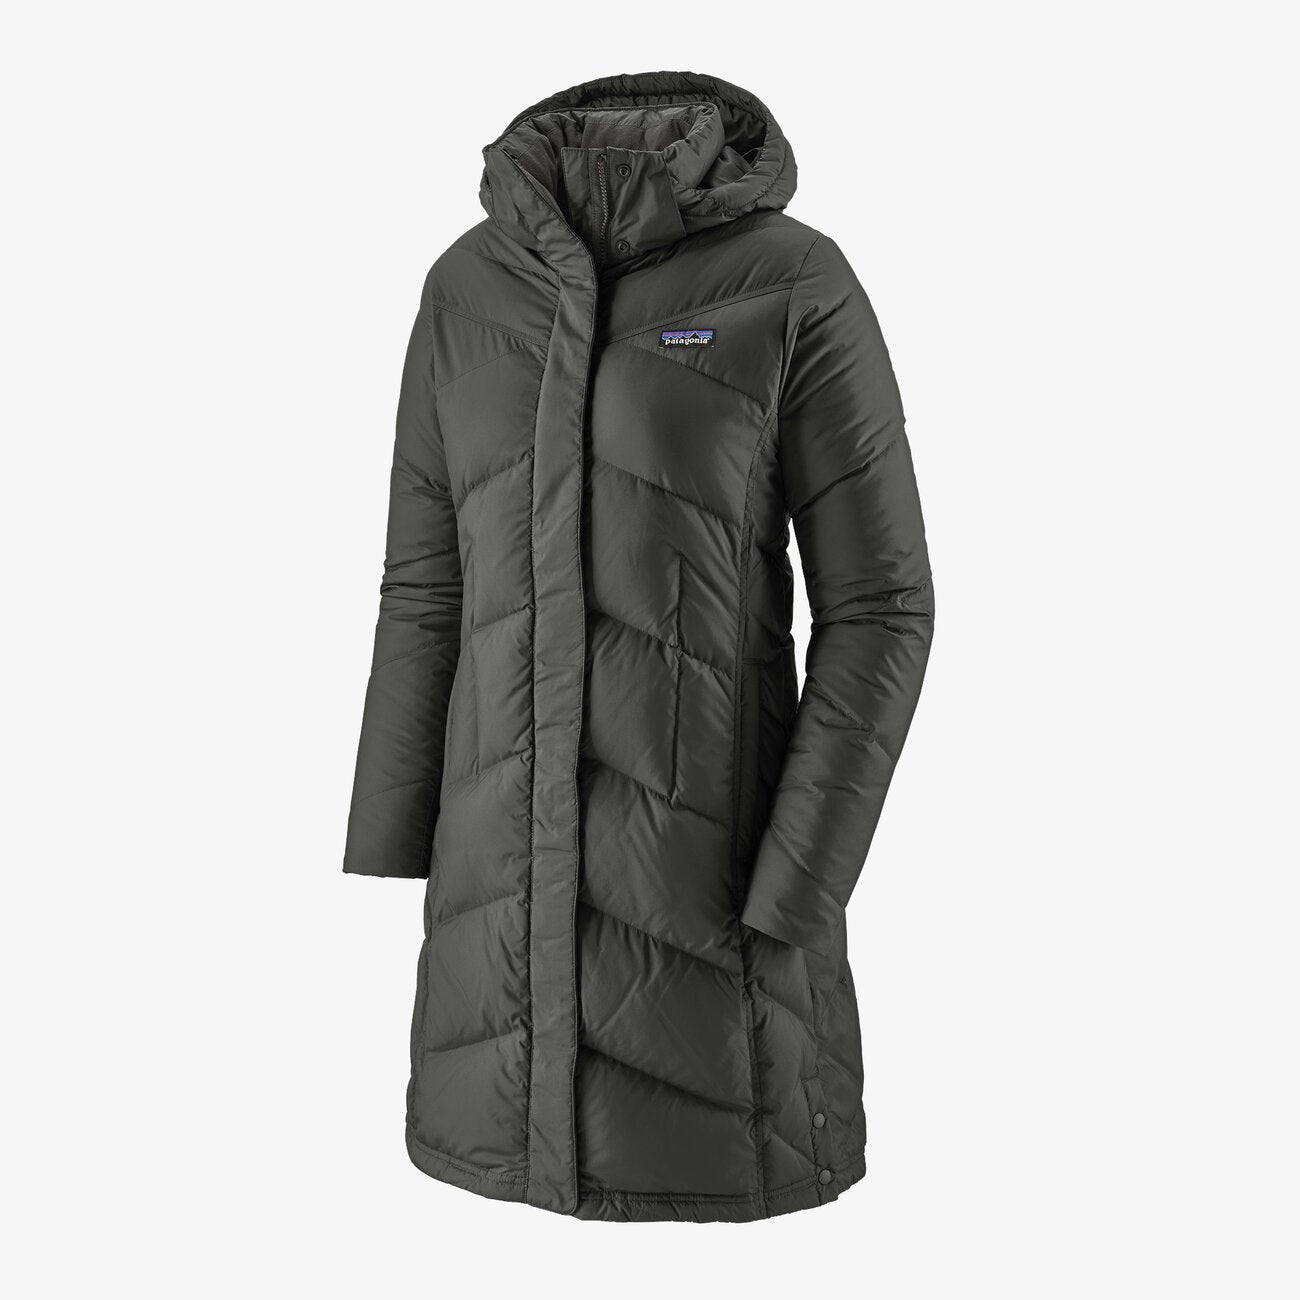 PATAGONIA DOWN WITH IT DUNPARKA - DAME - FORGE GREY